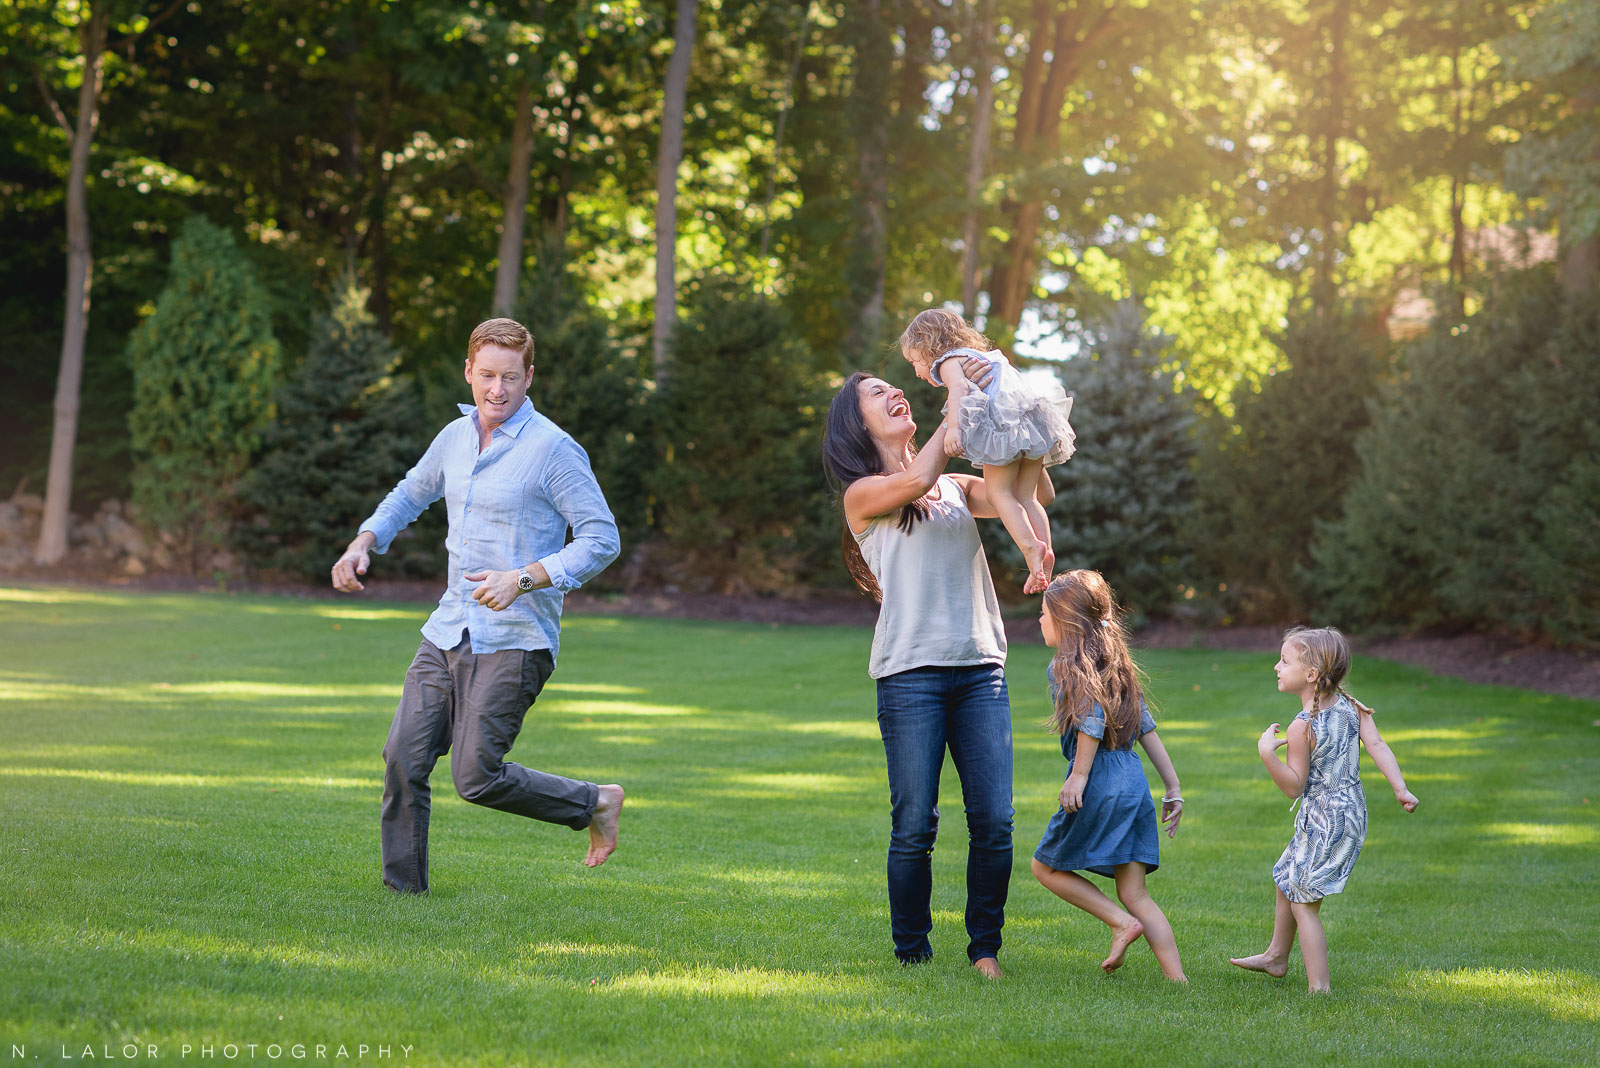 Candid family photo of everyone running around and being silly. Lifestyle portrait by N. Lalor Photography.